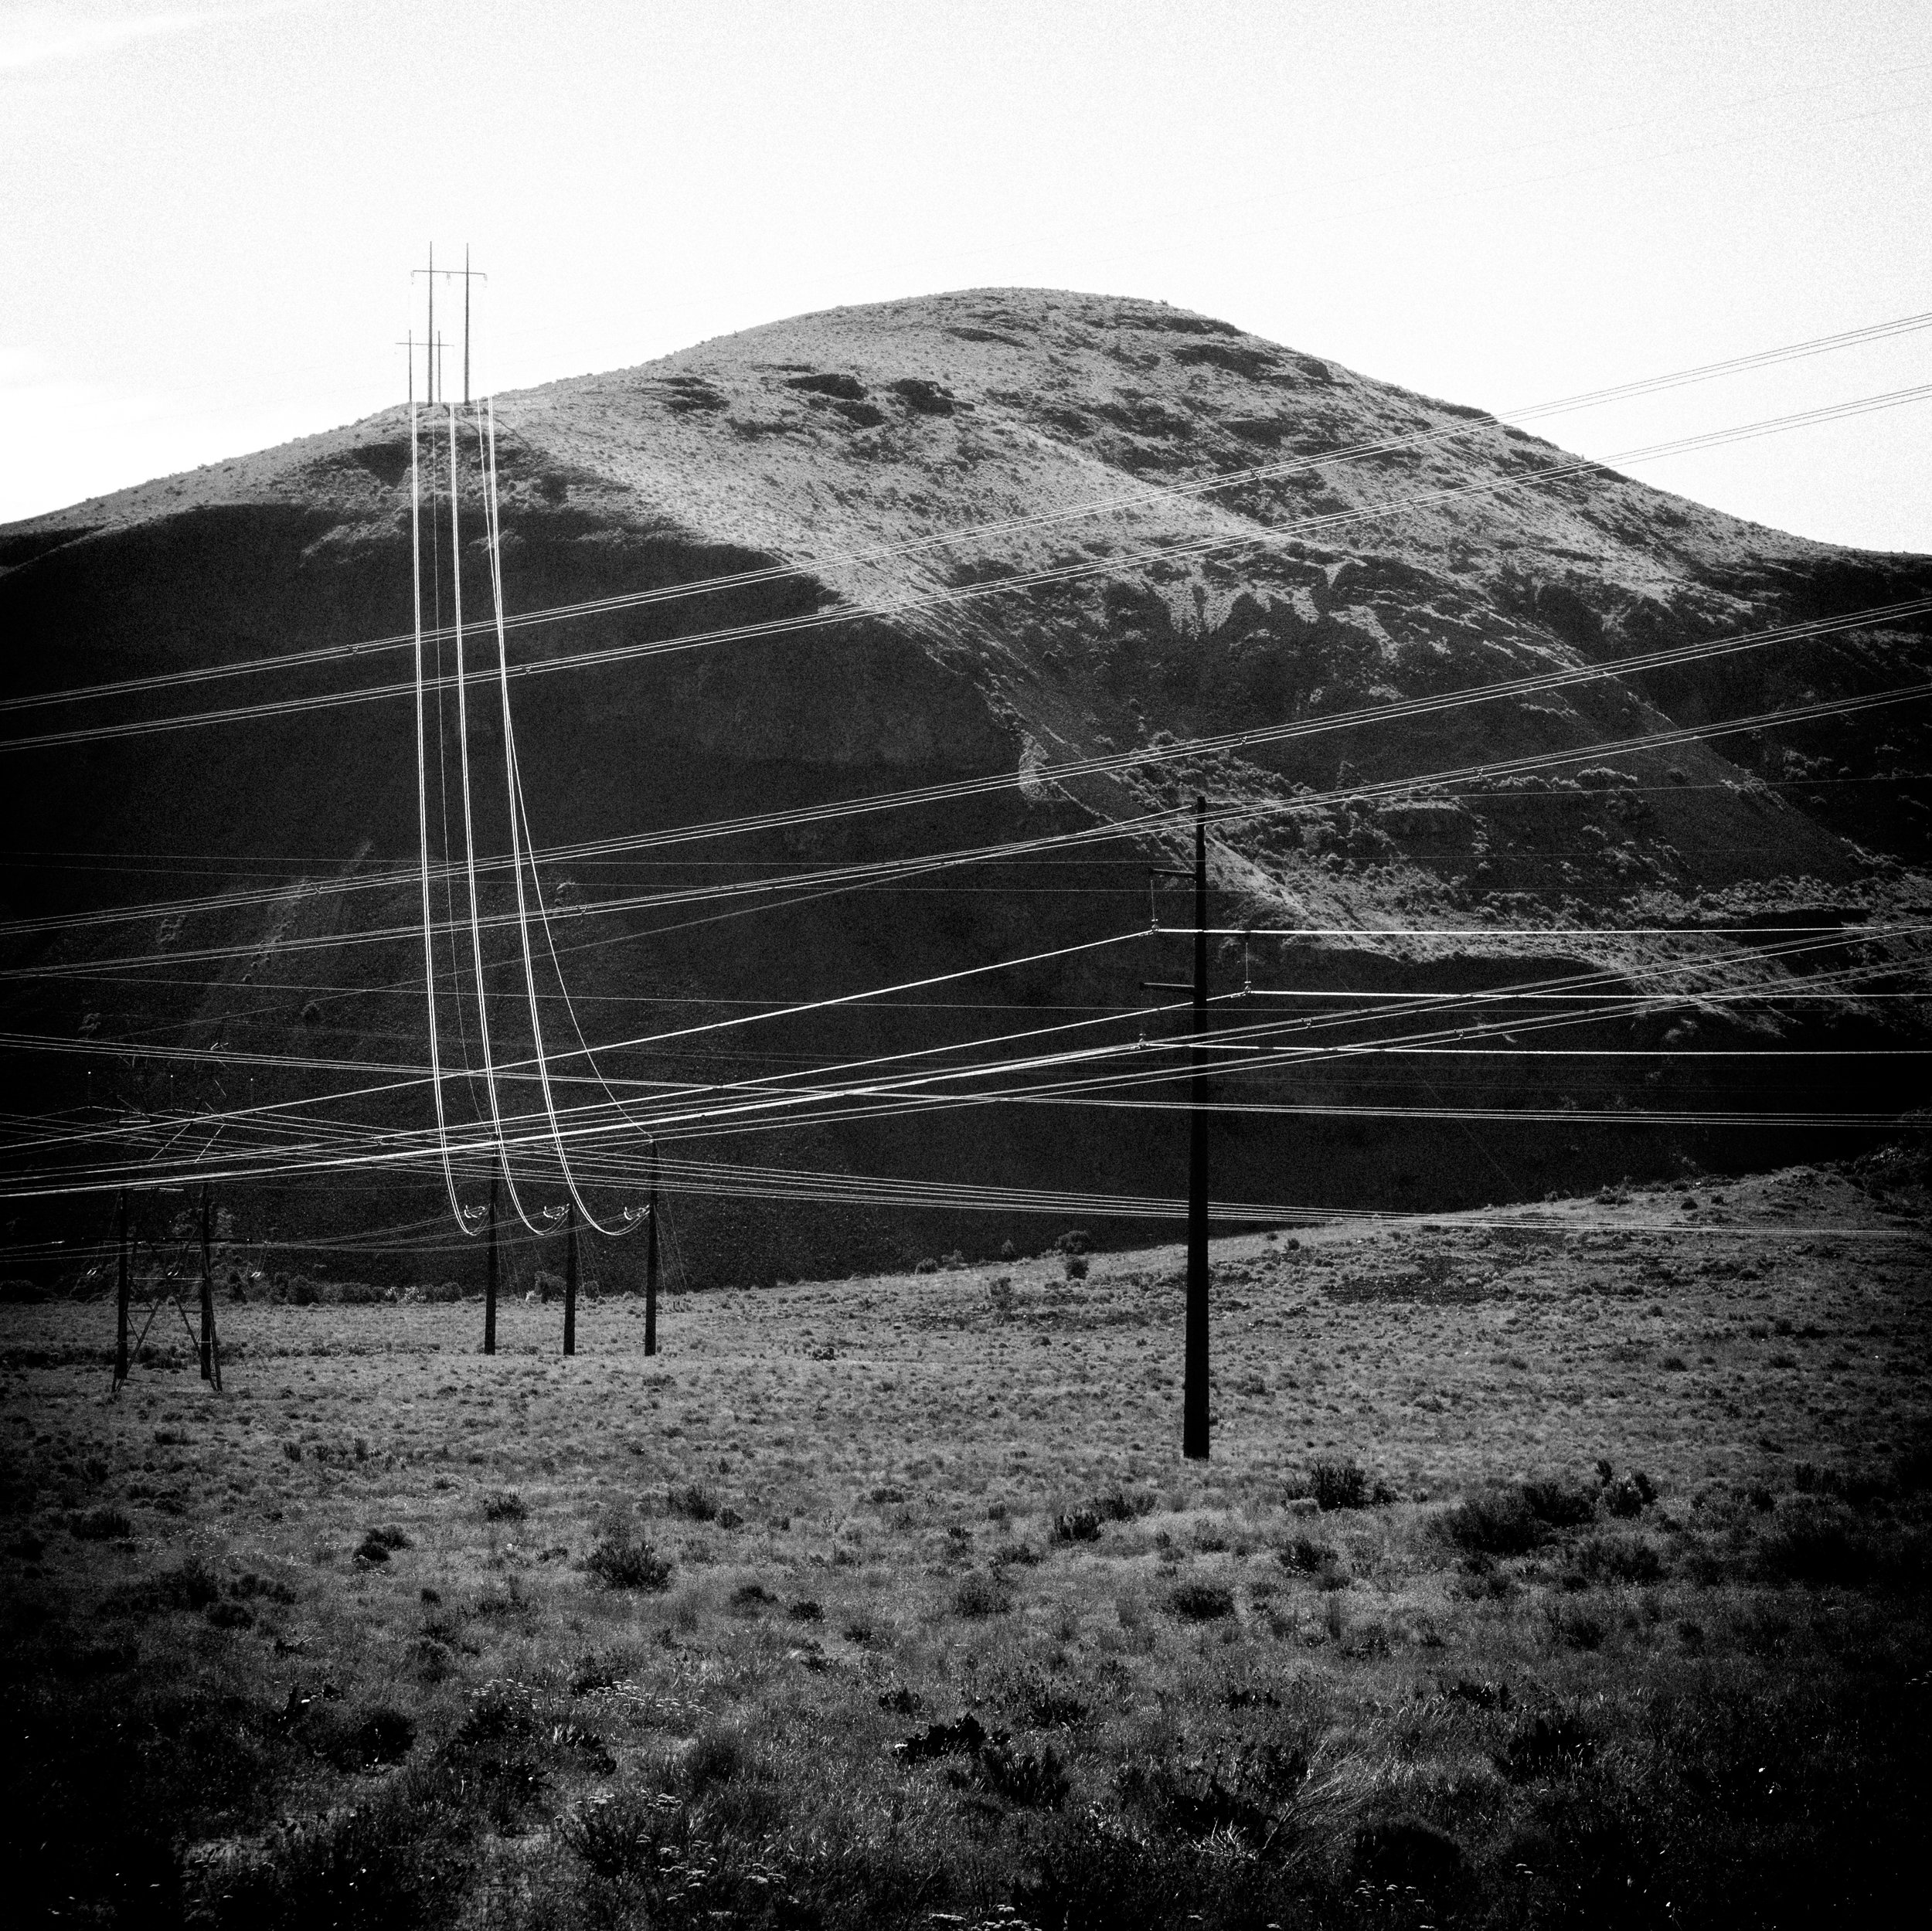 Power lines, Palisades Rd in Eastern Washington, May 2017